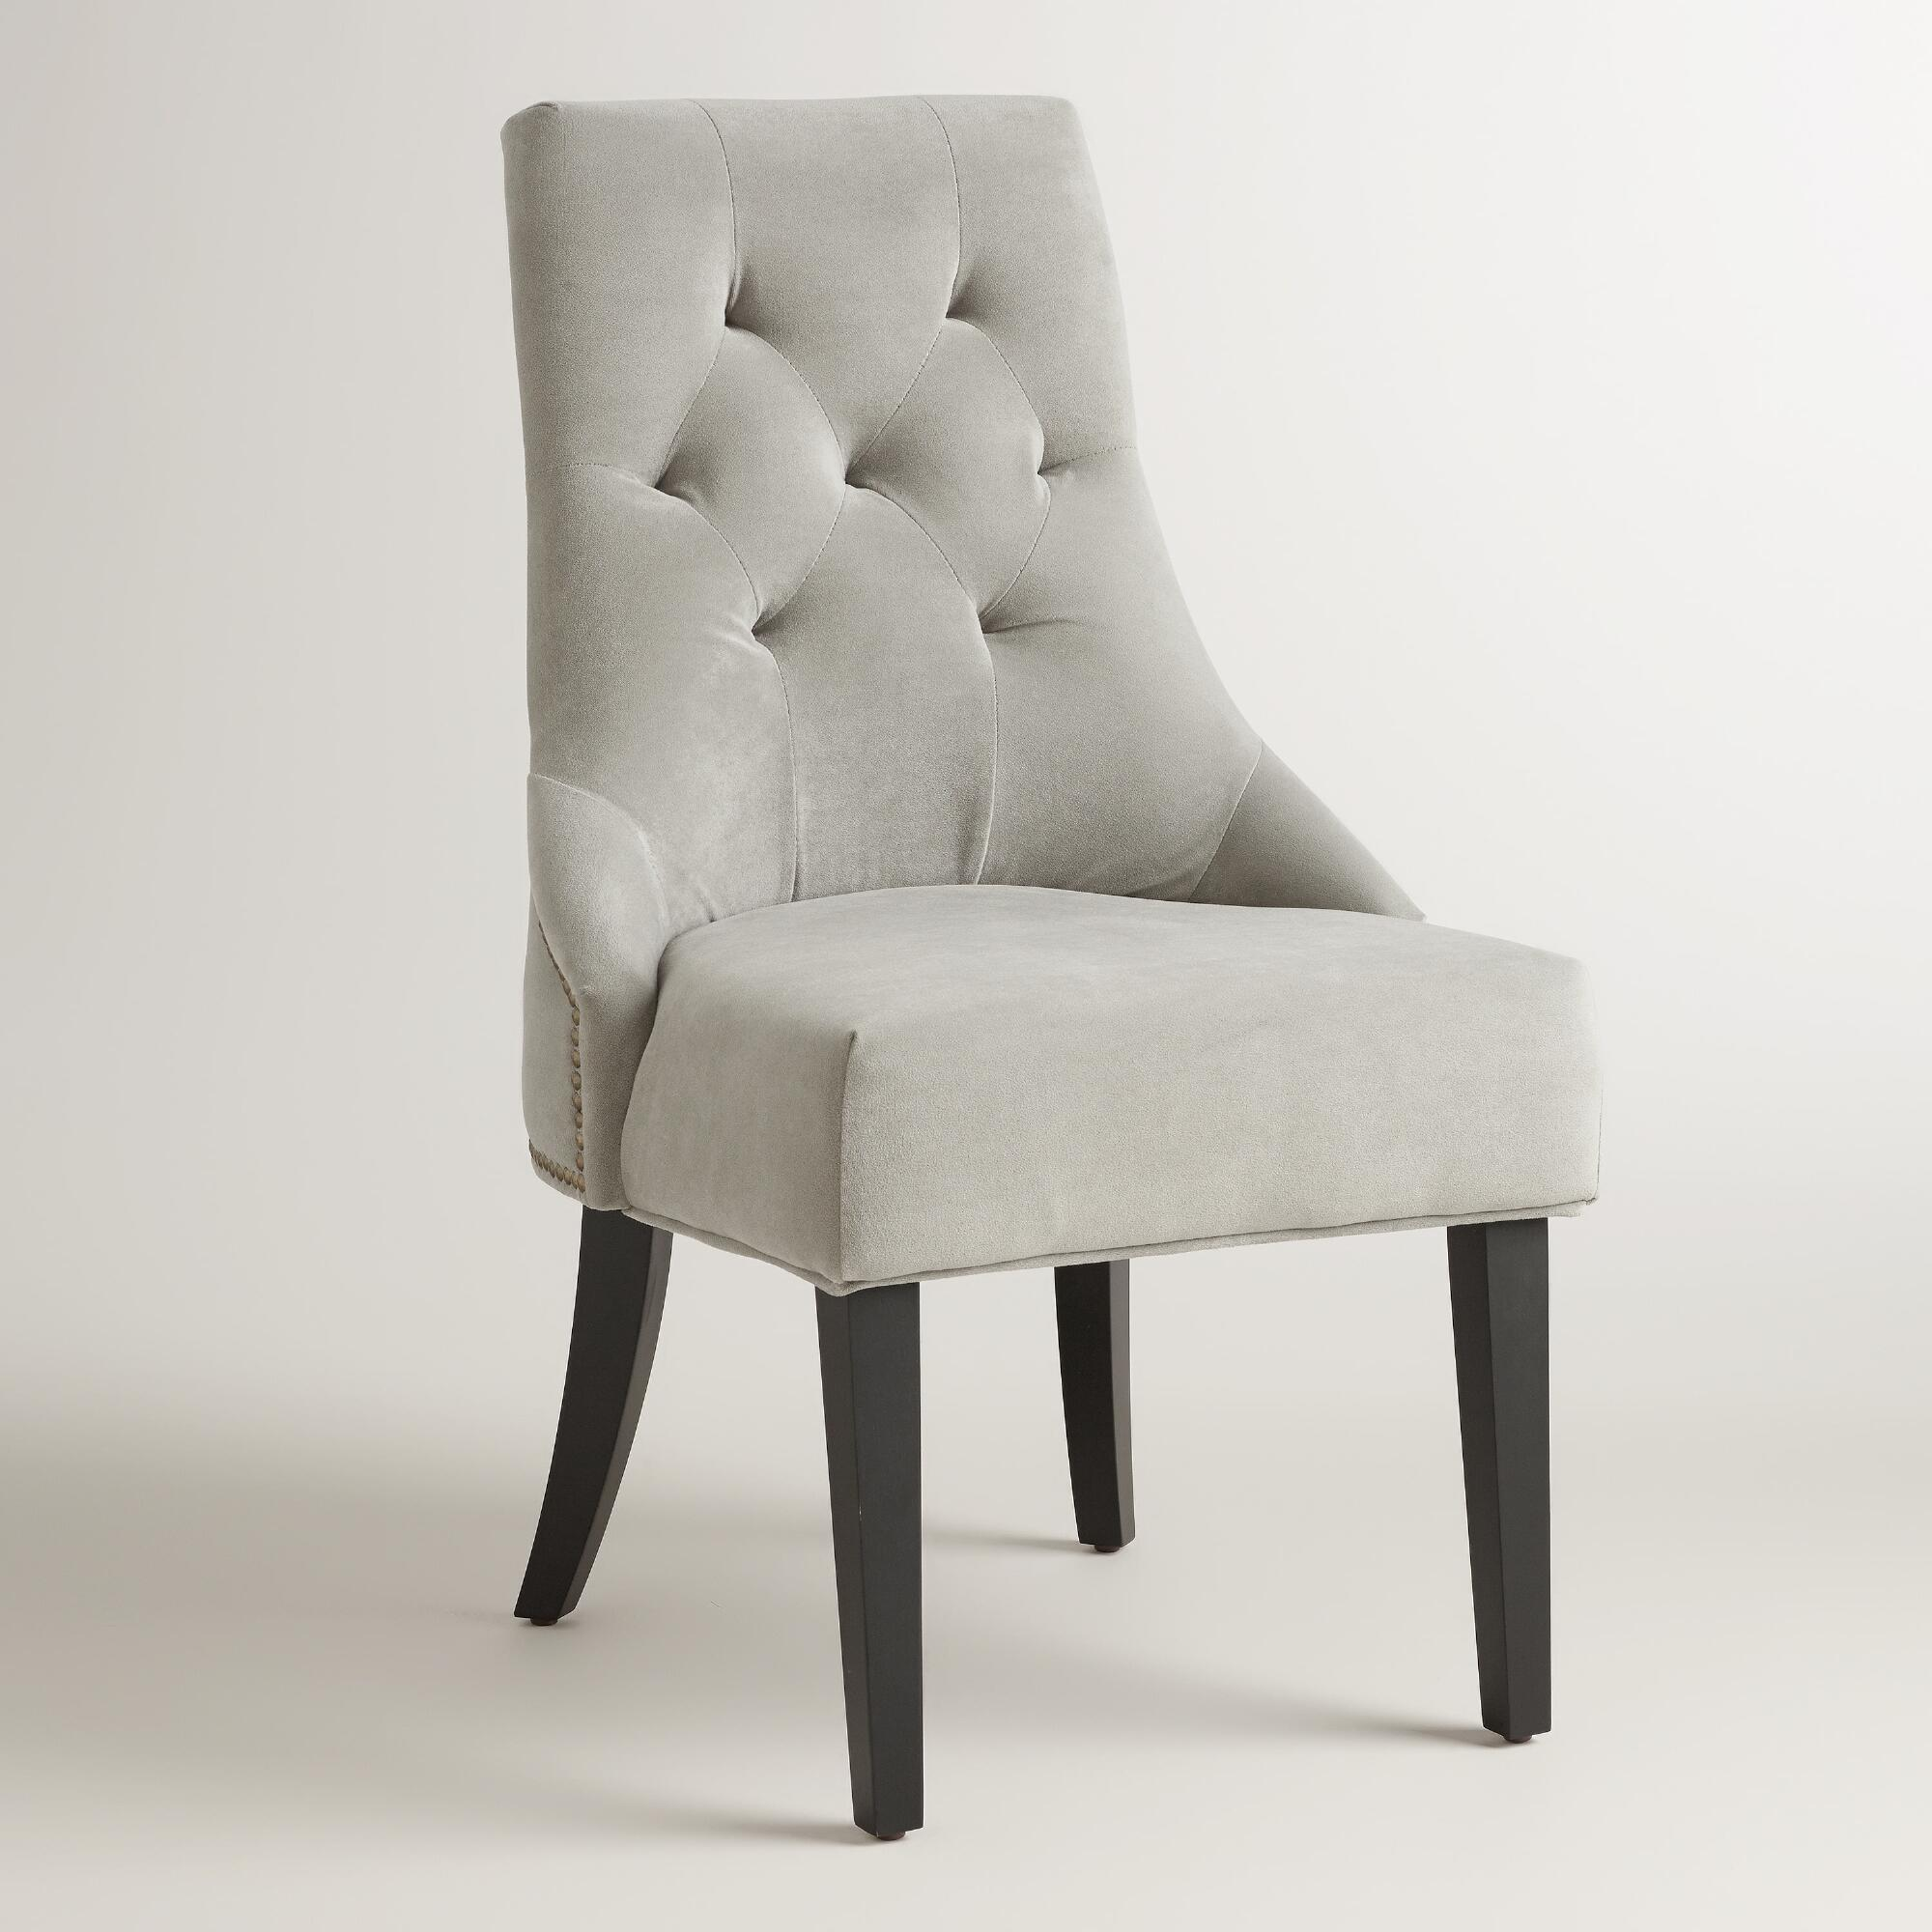 . Dove Gray Tufted Lydia Dining Chairs  Set of 2   World Market